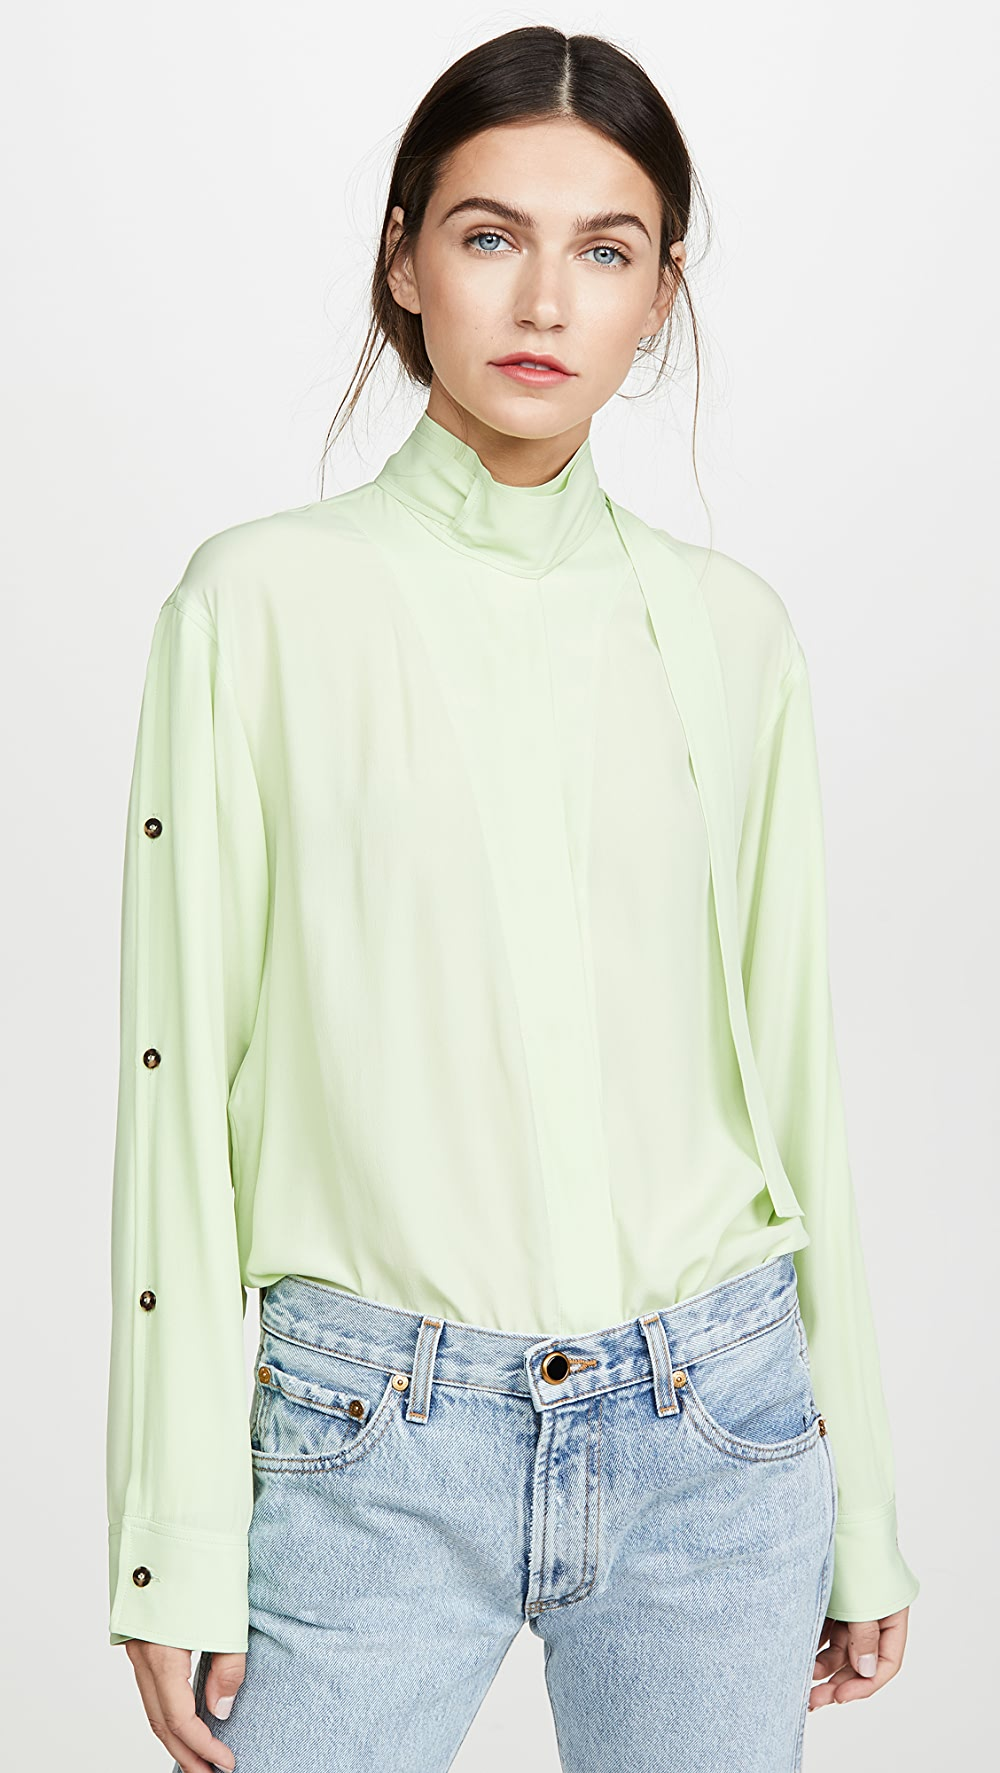 2019 Fashion Cedric Charlier - Button Down Shirt Removing Obstruction